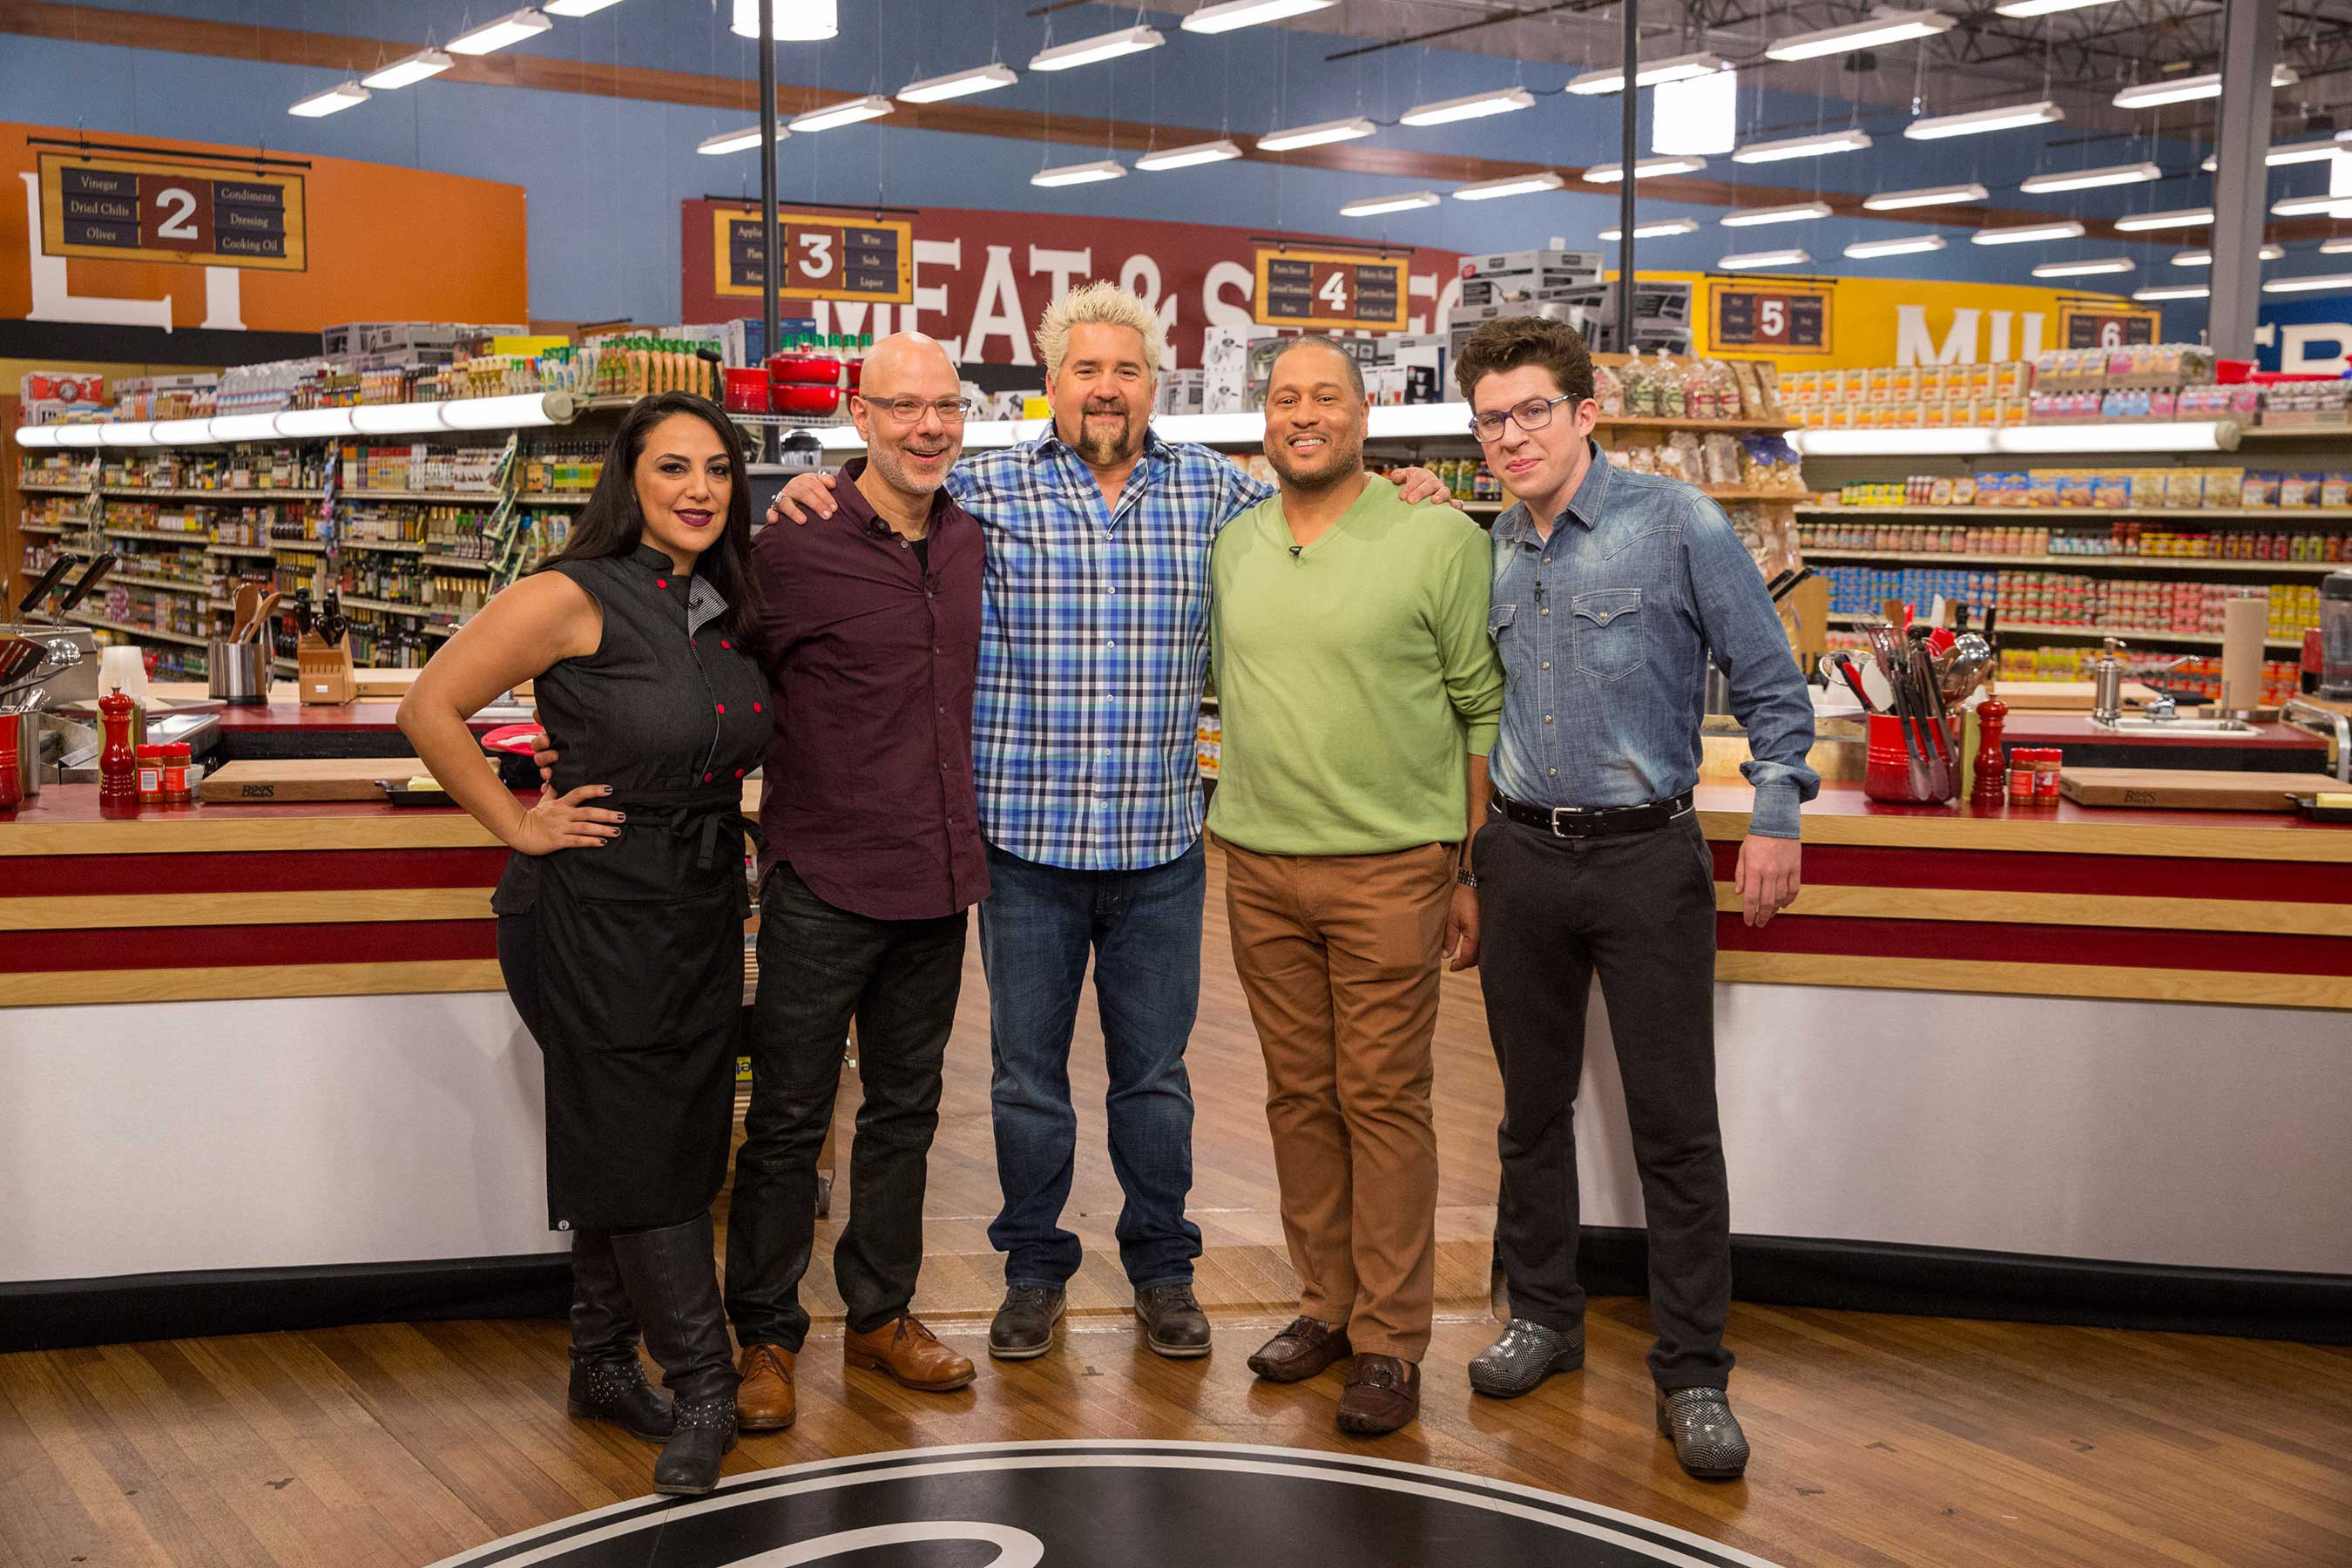 Guys grocery game